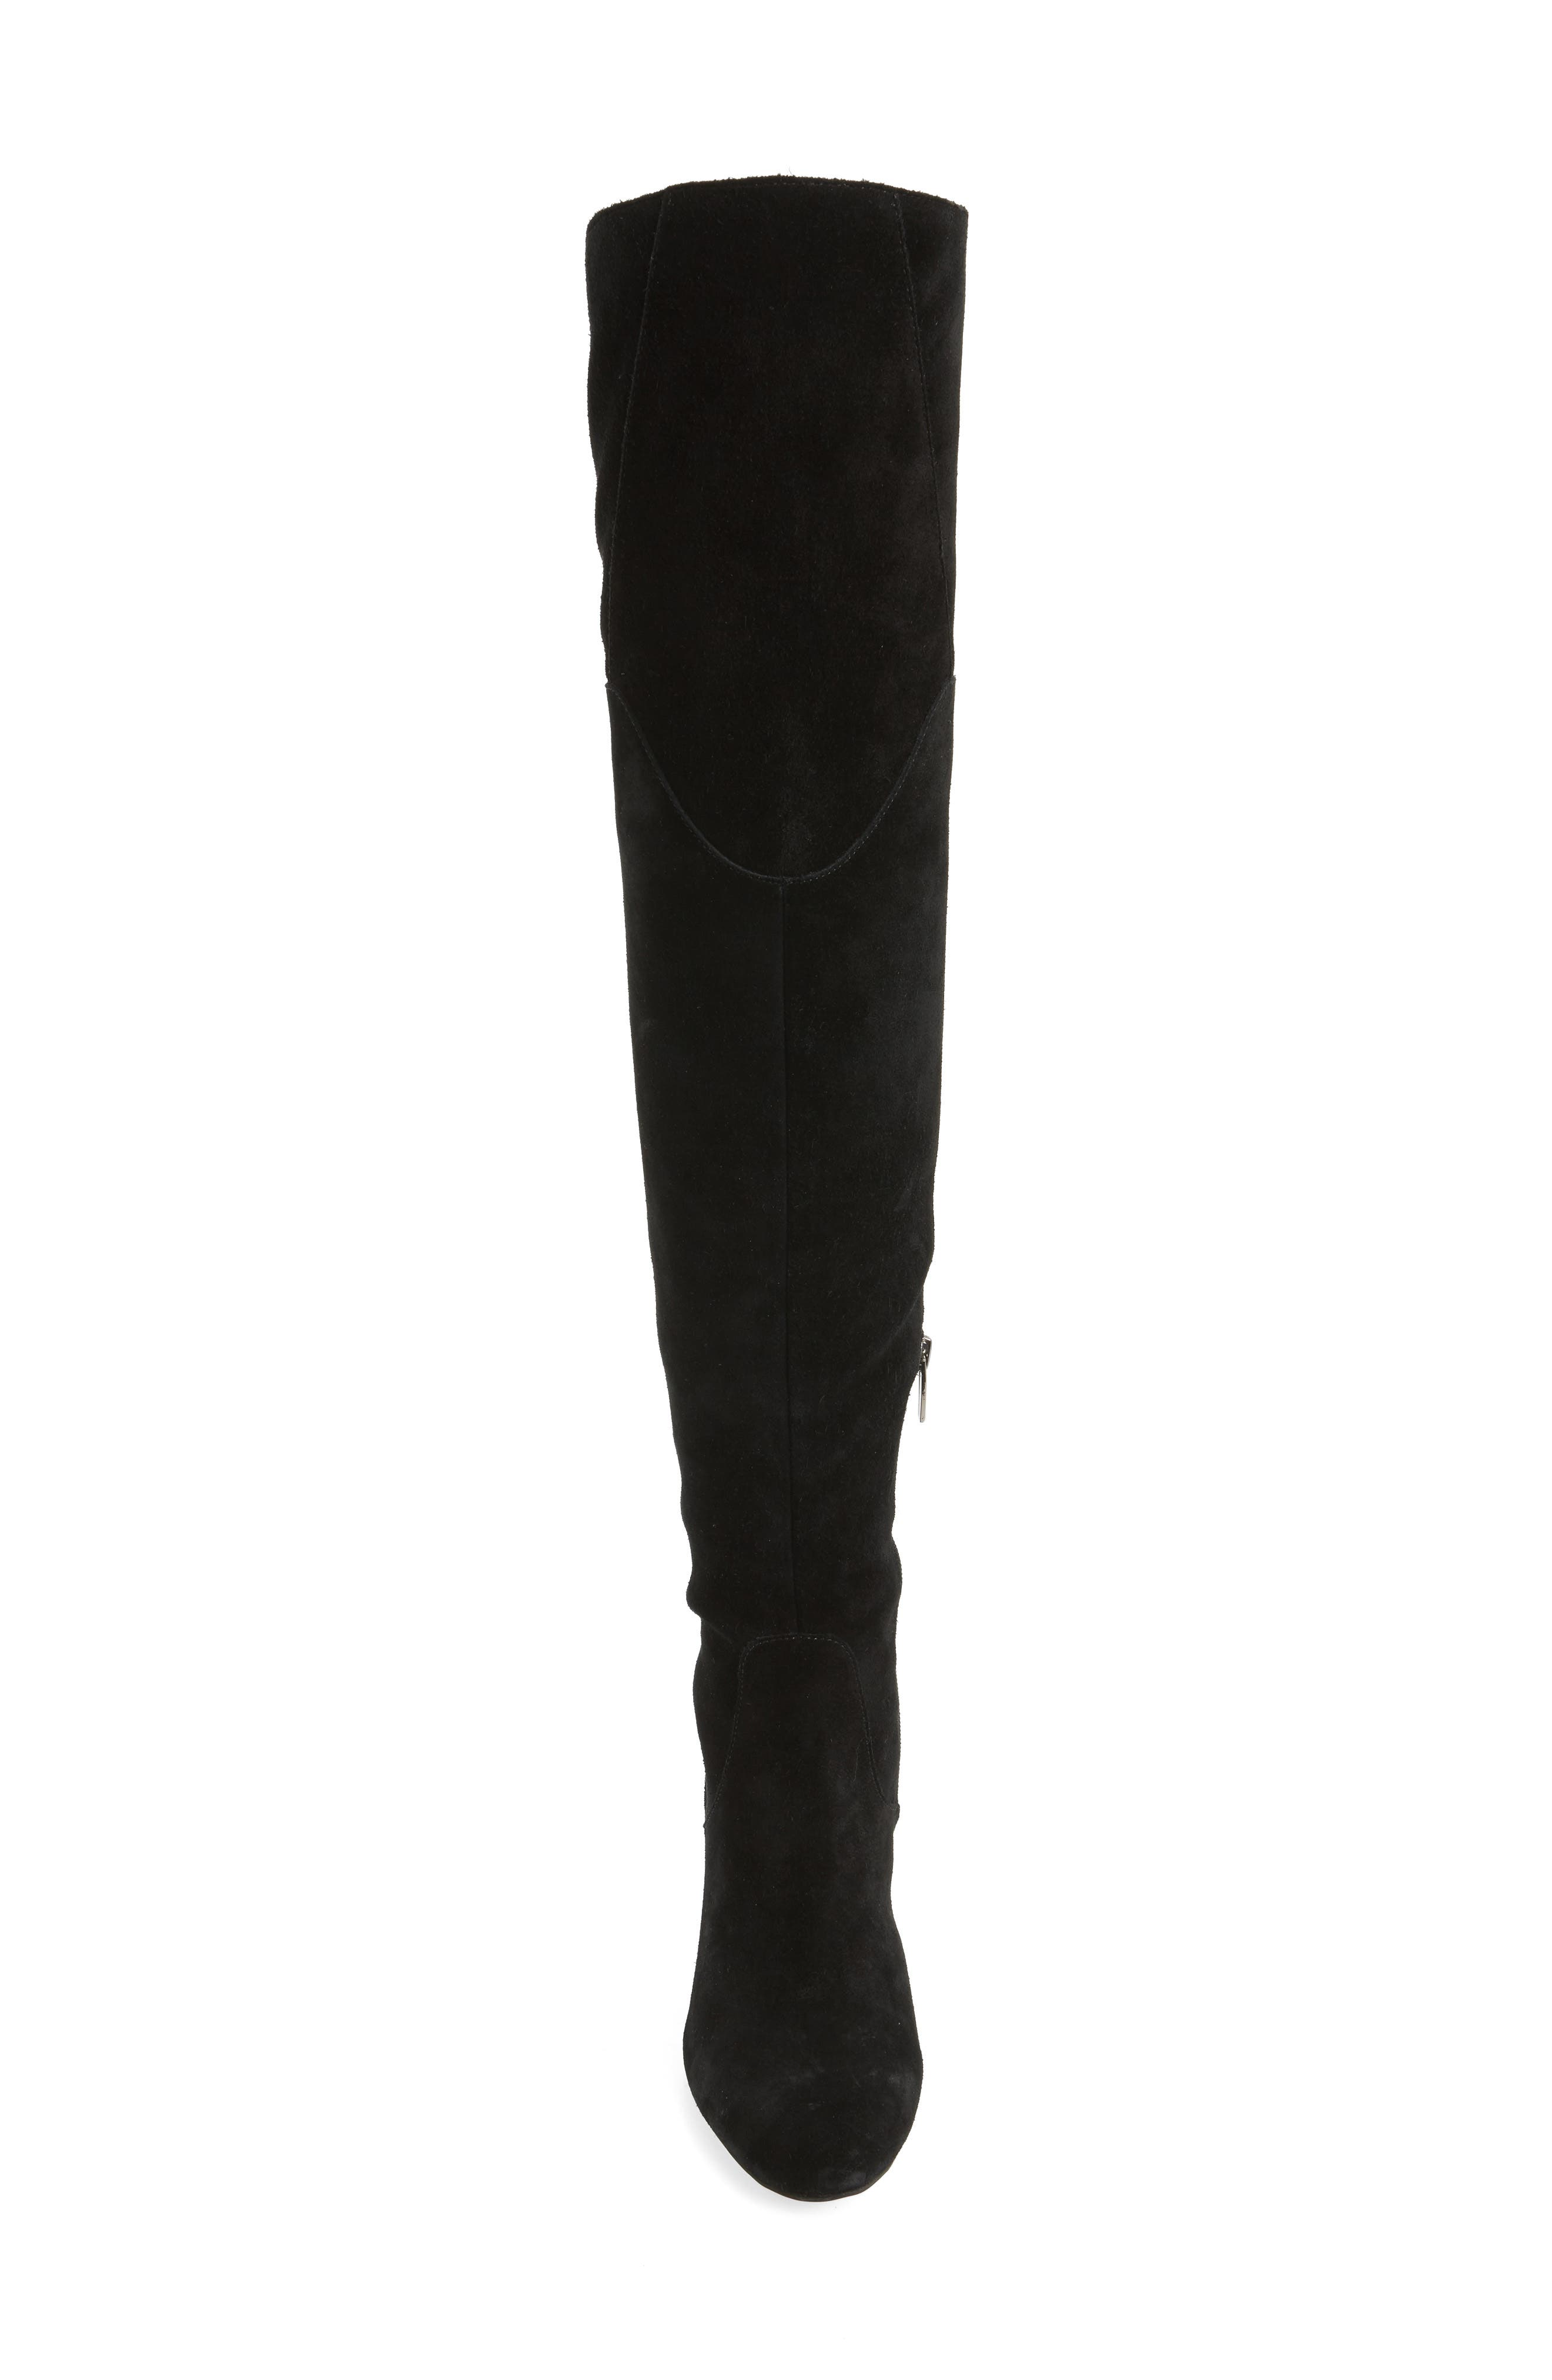 Armaceli Over the Knee Boot,                             Alternate thumbnail 13, color,